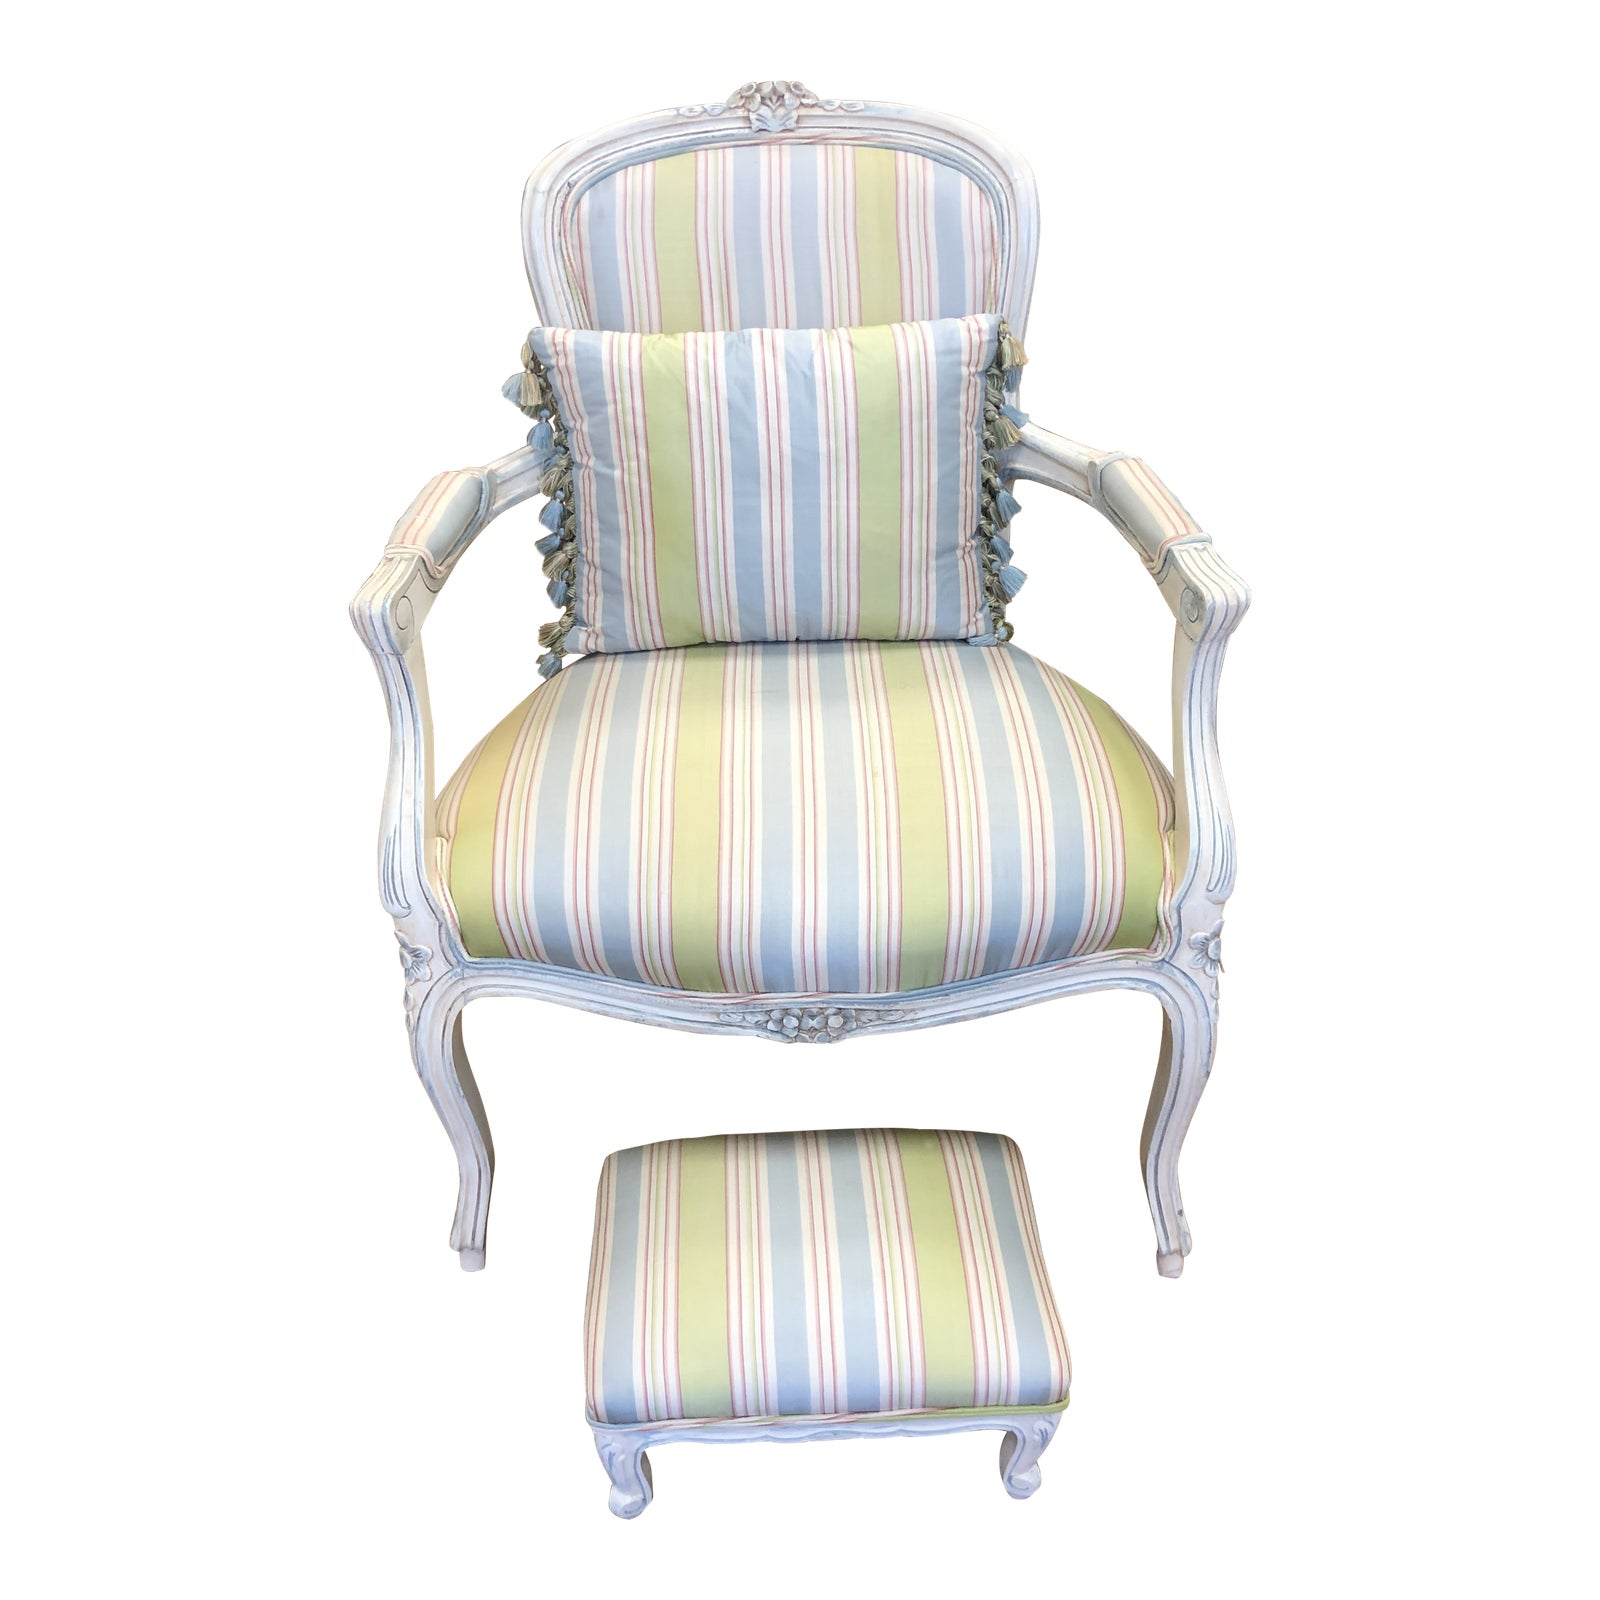 French Provincial Chair >> French Provincial Arm Chair Foot Stool Design Plus Gallery